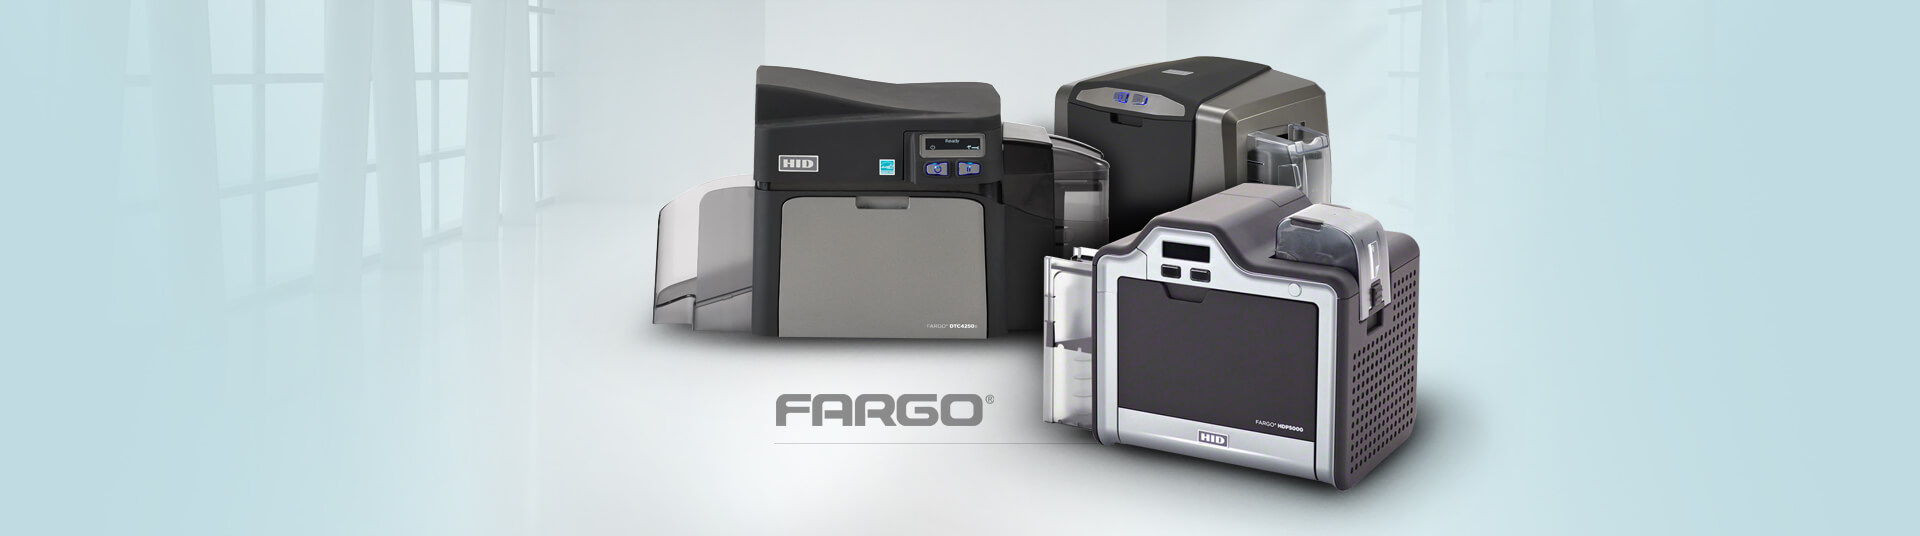 Fargo ID Badge Printer